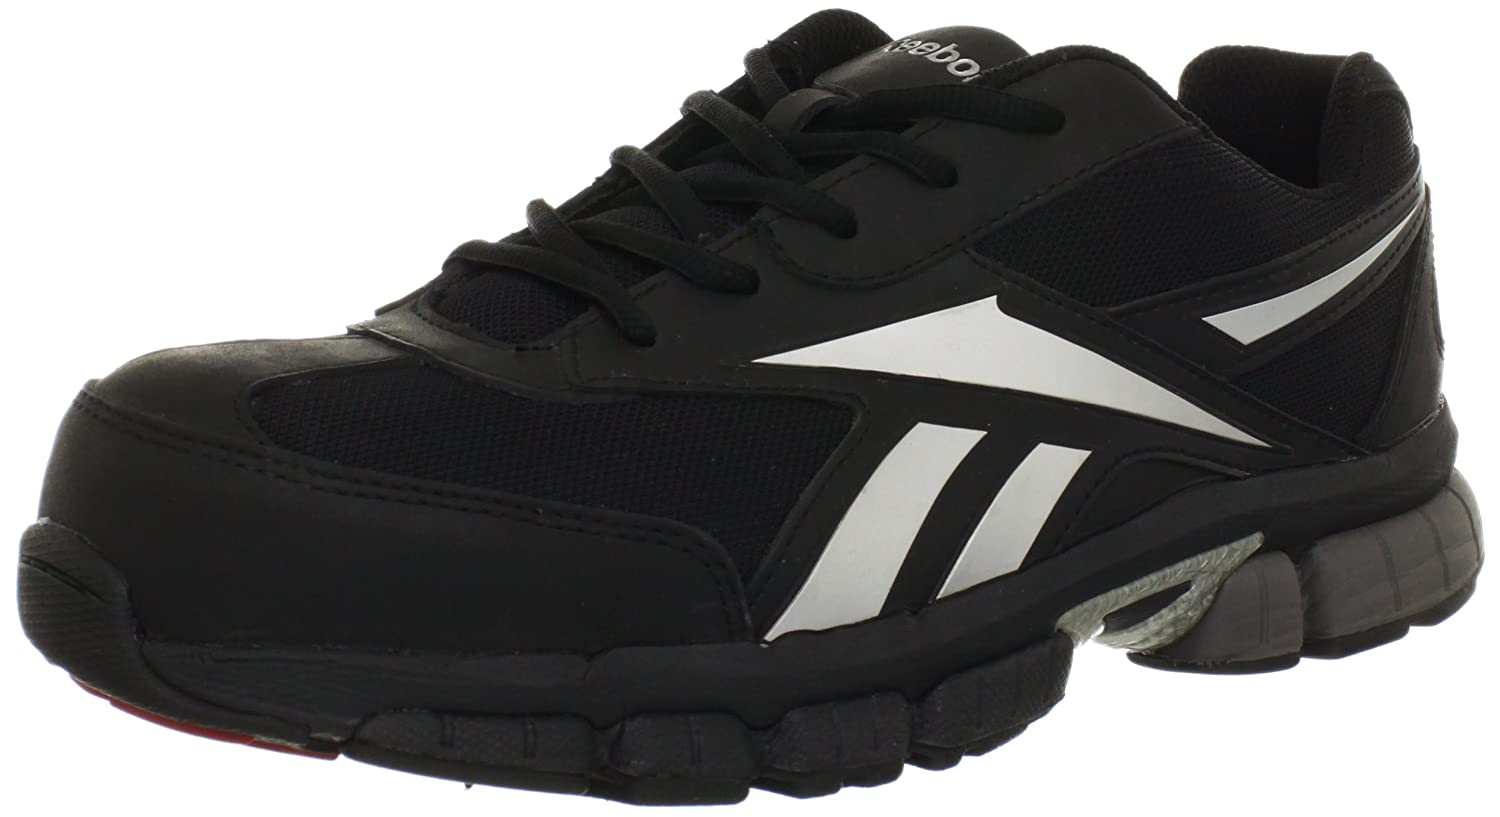 Reebok Work Men's Ketia RB4895 EH Athletic Safety Shoe B009L5POMY 10.5 D(M) US|Black/Silver